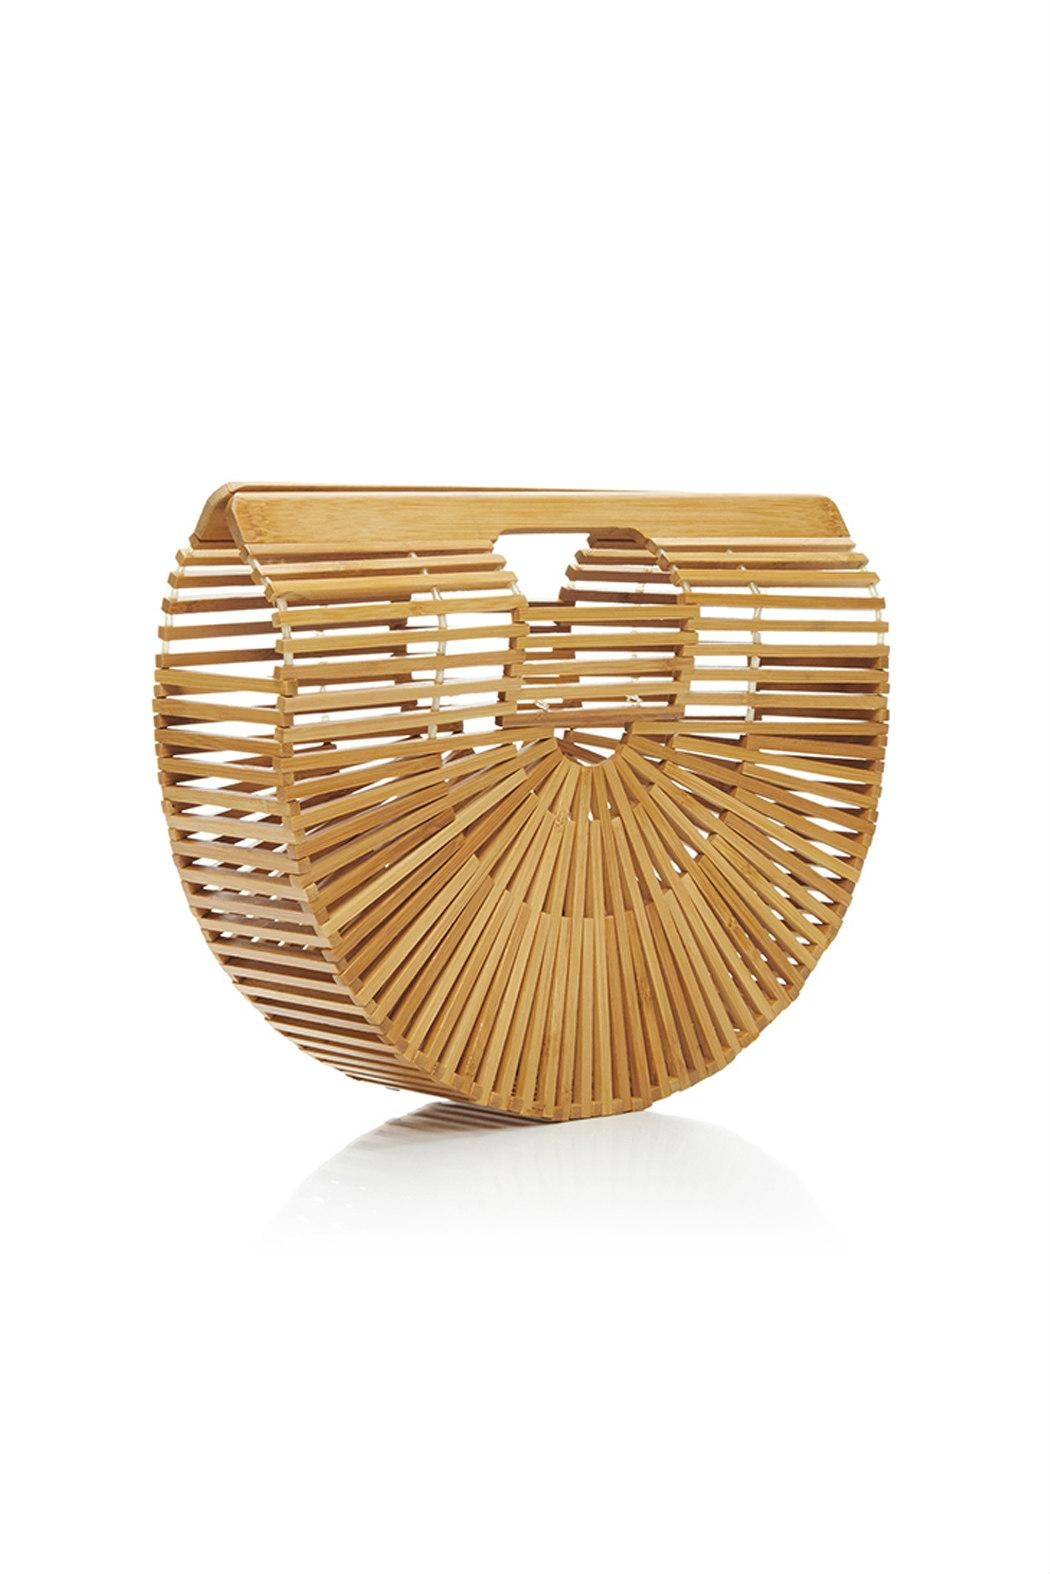 Catherine K Collections Bamboo Clutch Bag - Front Full Image